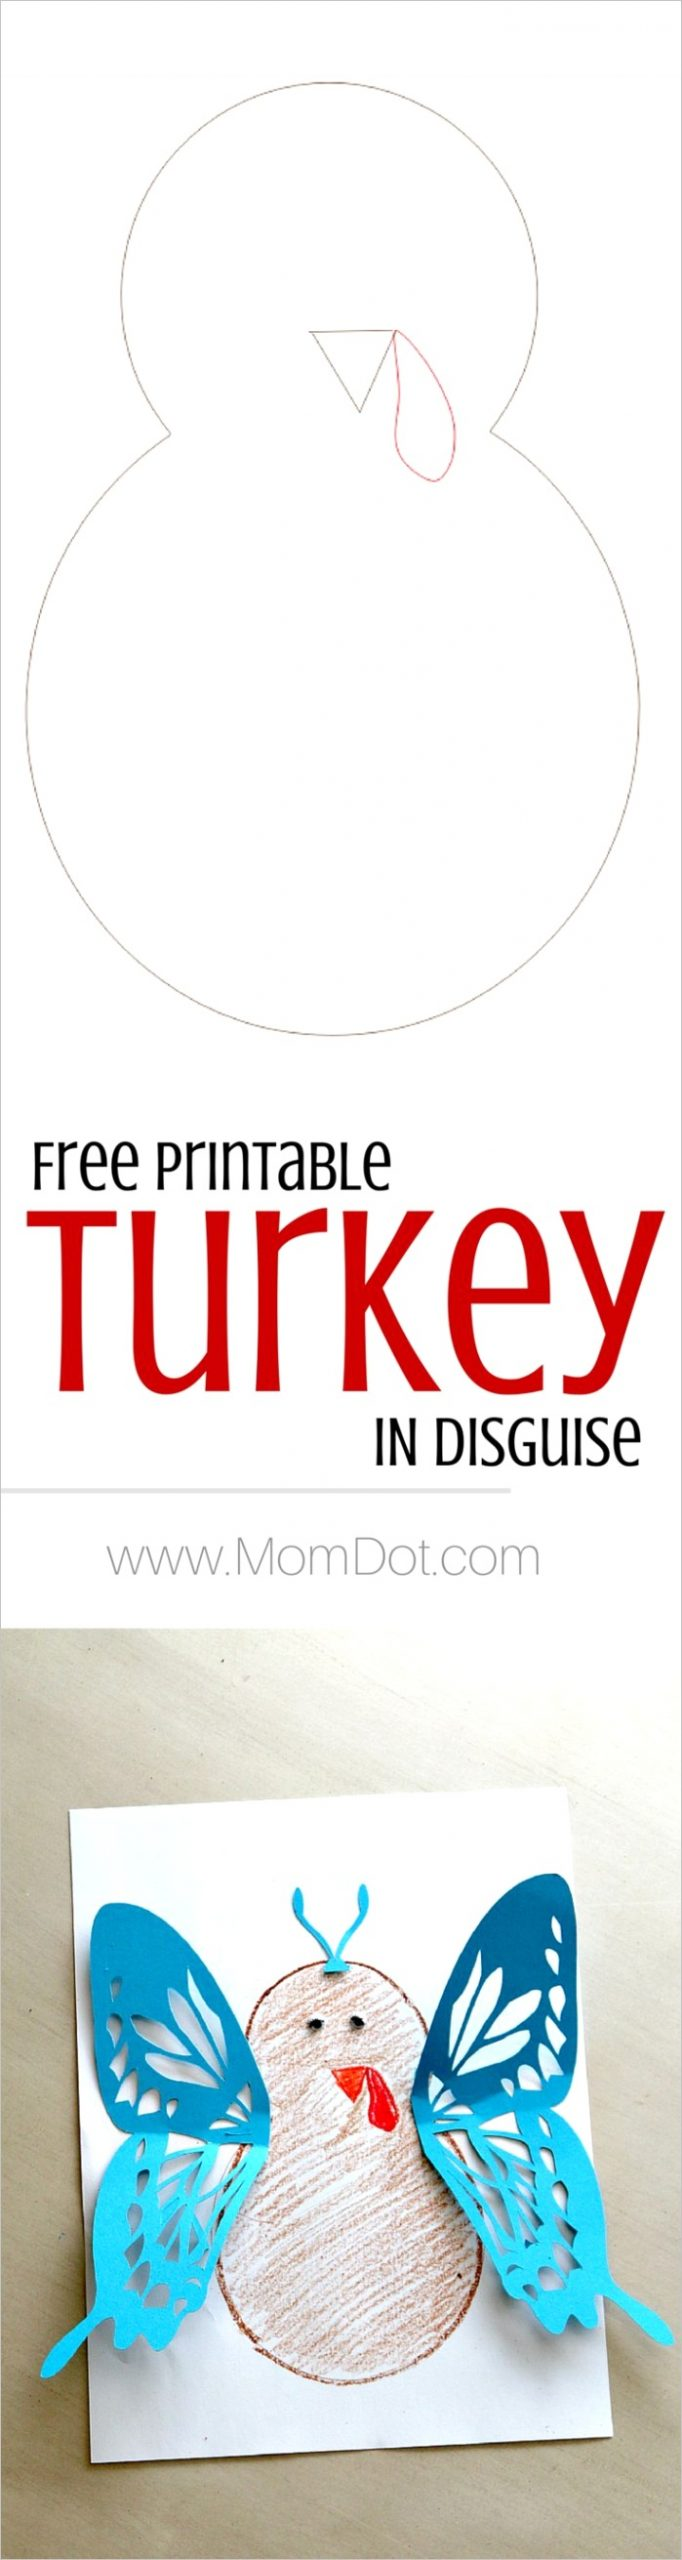 turkey in disguise free printable template